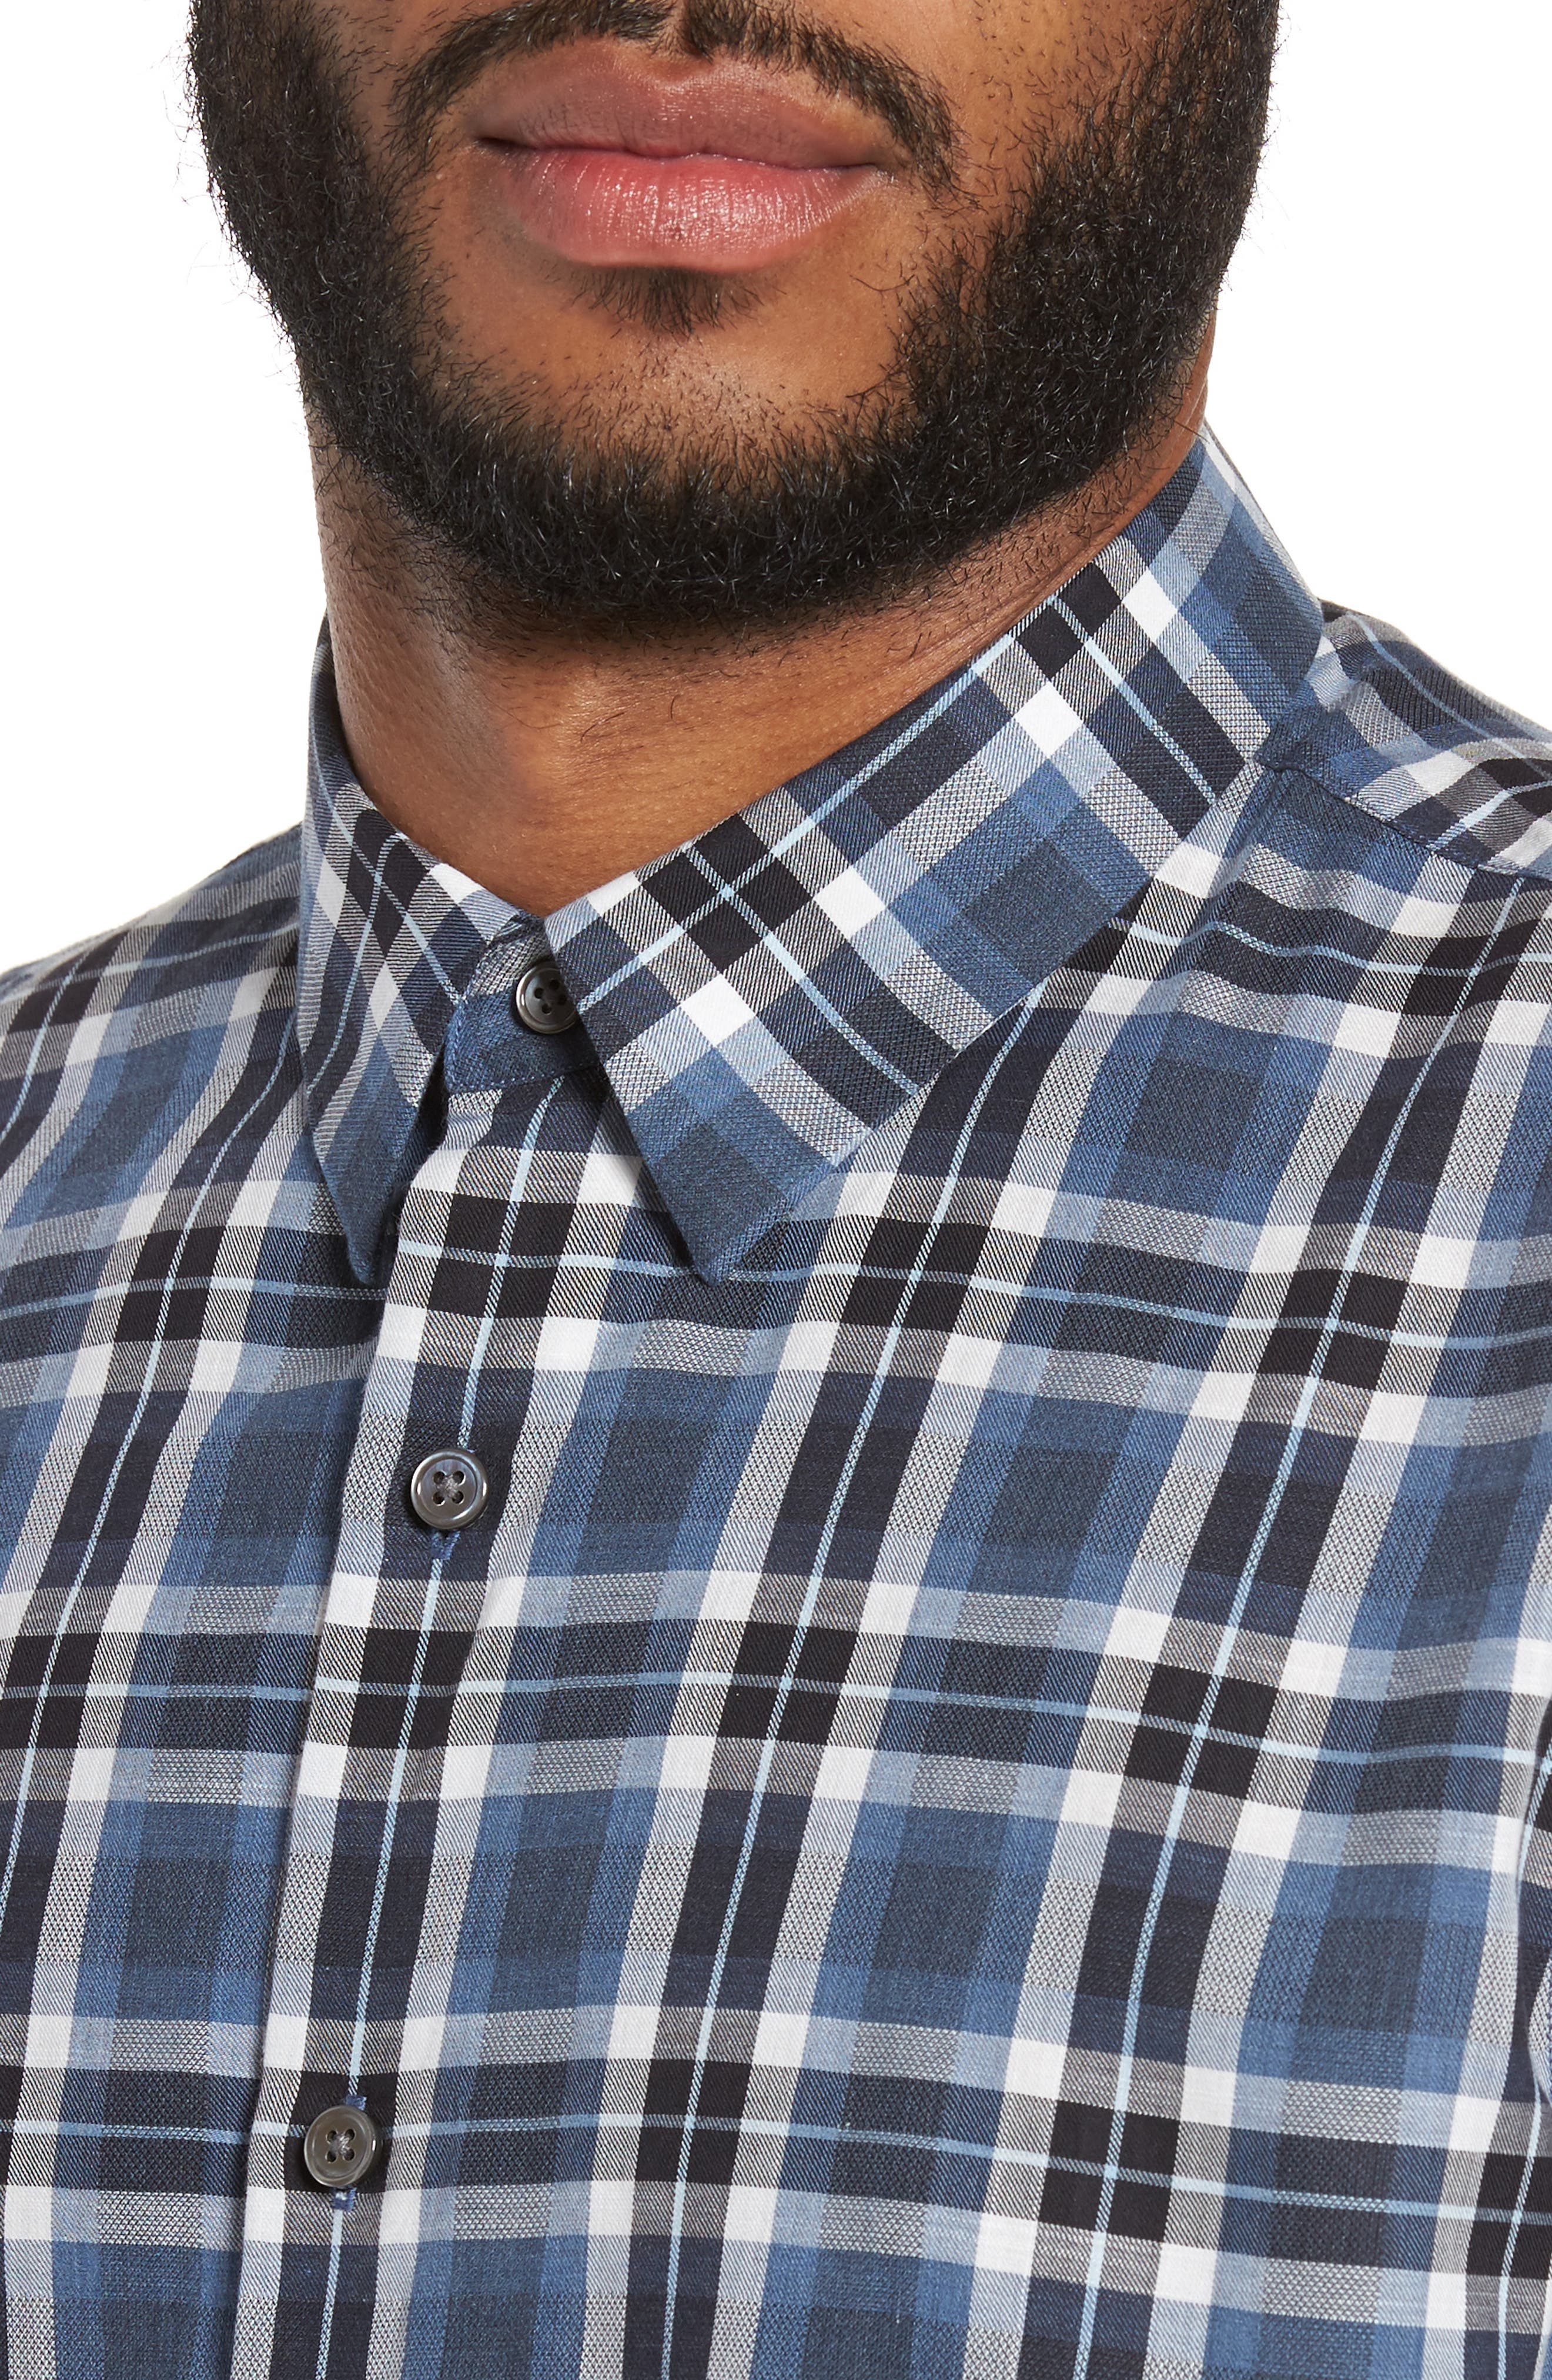 Trim Fit Plaid Flannel Shirt,                             Alternate thumbnail 4, color,                             413